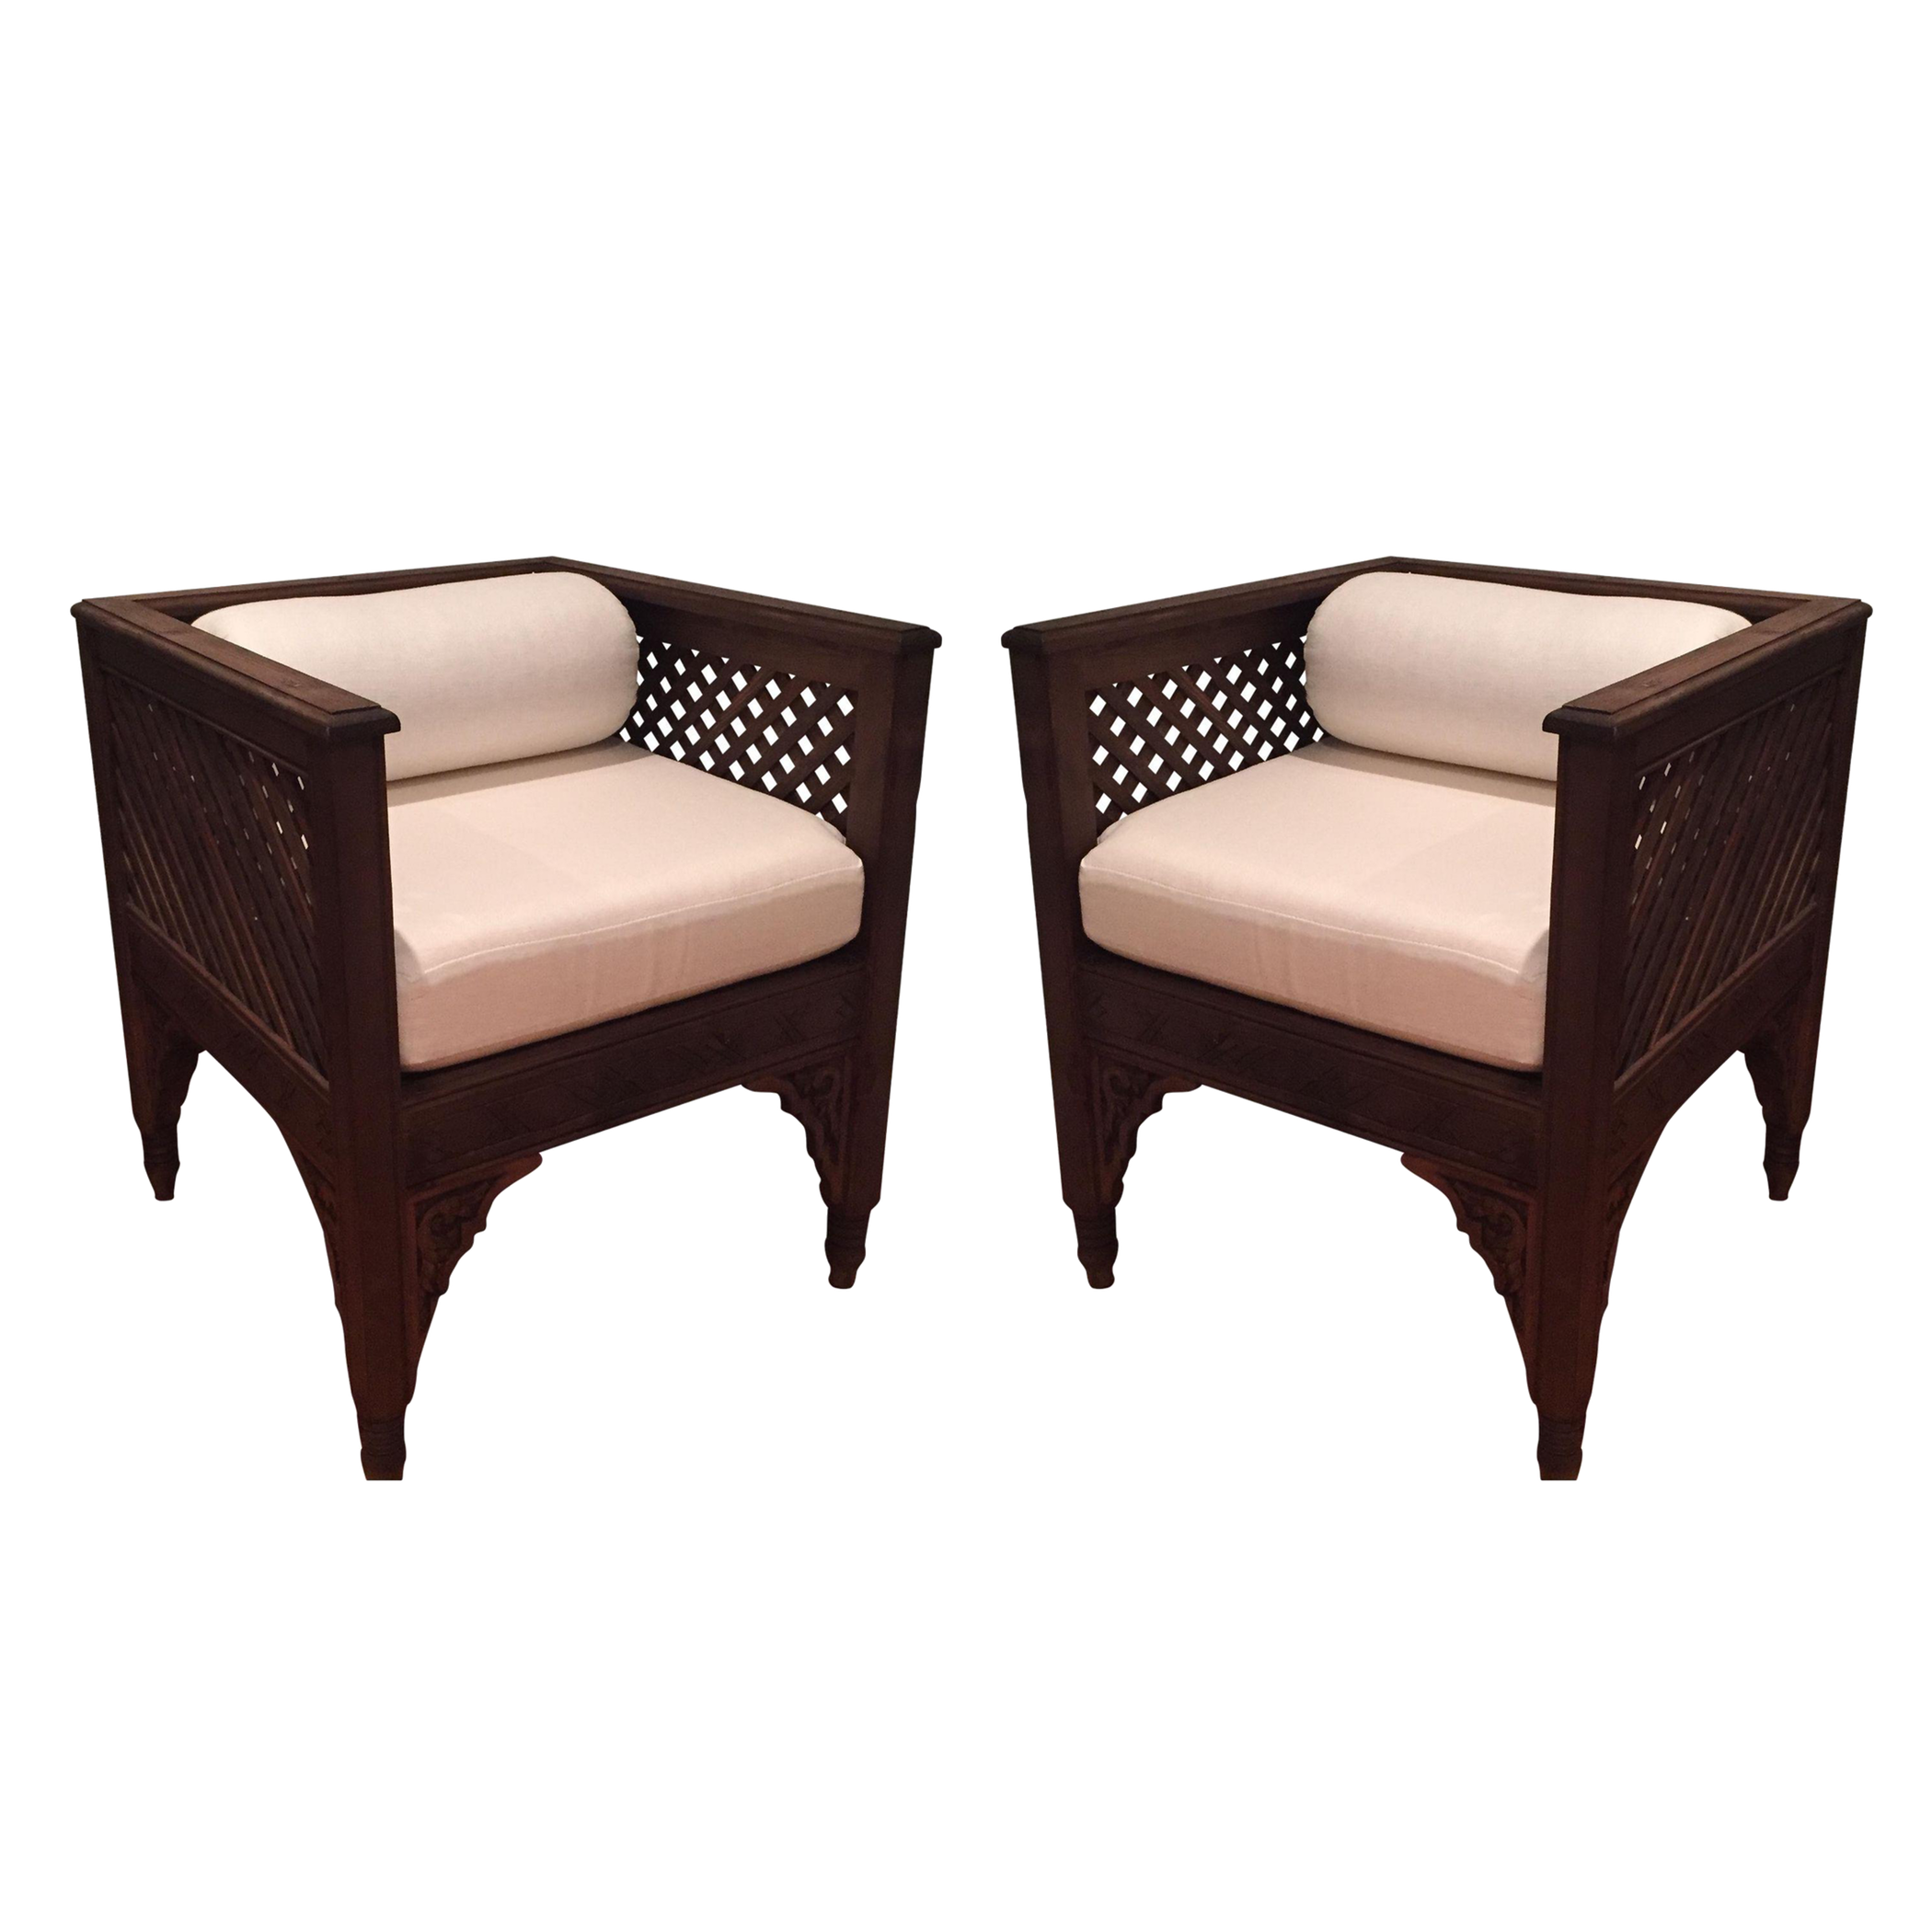 Moroccan Chairs   A Pair